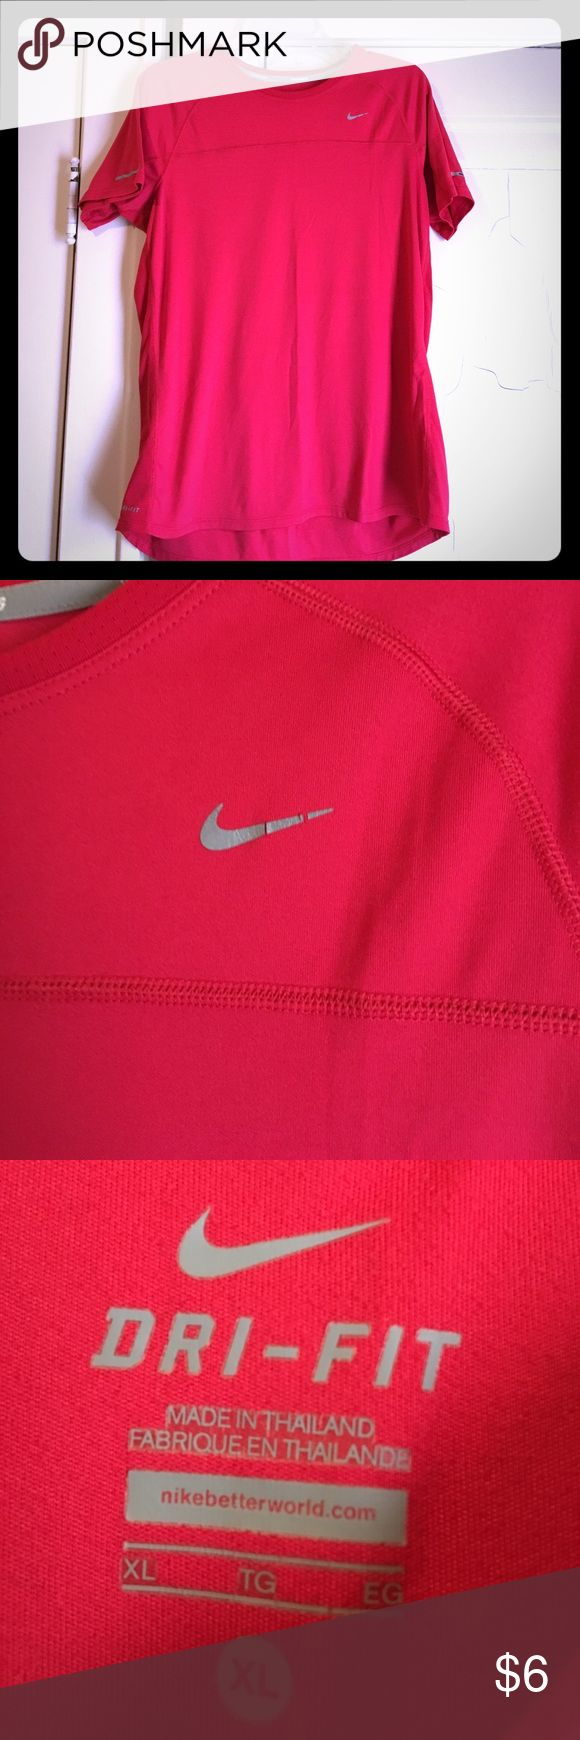 Nike Dri-Fit Running Shirt This is a red Nike Dri-Fit running shirt that has been worn a few times. The Nike symbol and one of the reflective strips are slightly peeling as shown in the pictures but the shirt is still in great condition. Nike Tops Tees - Short Sleeve